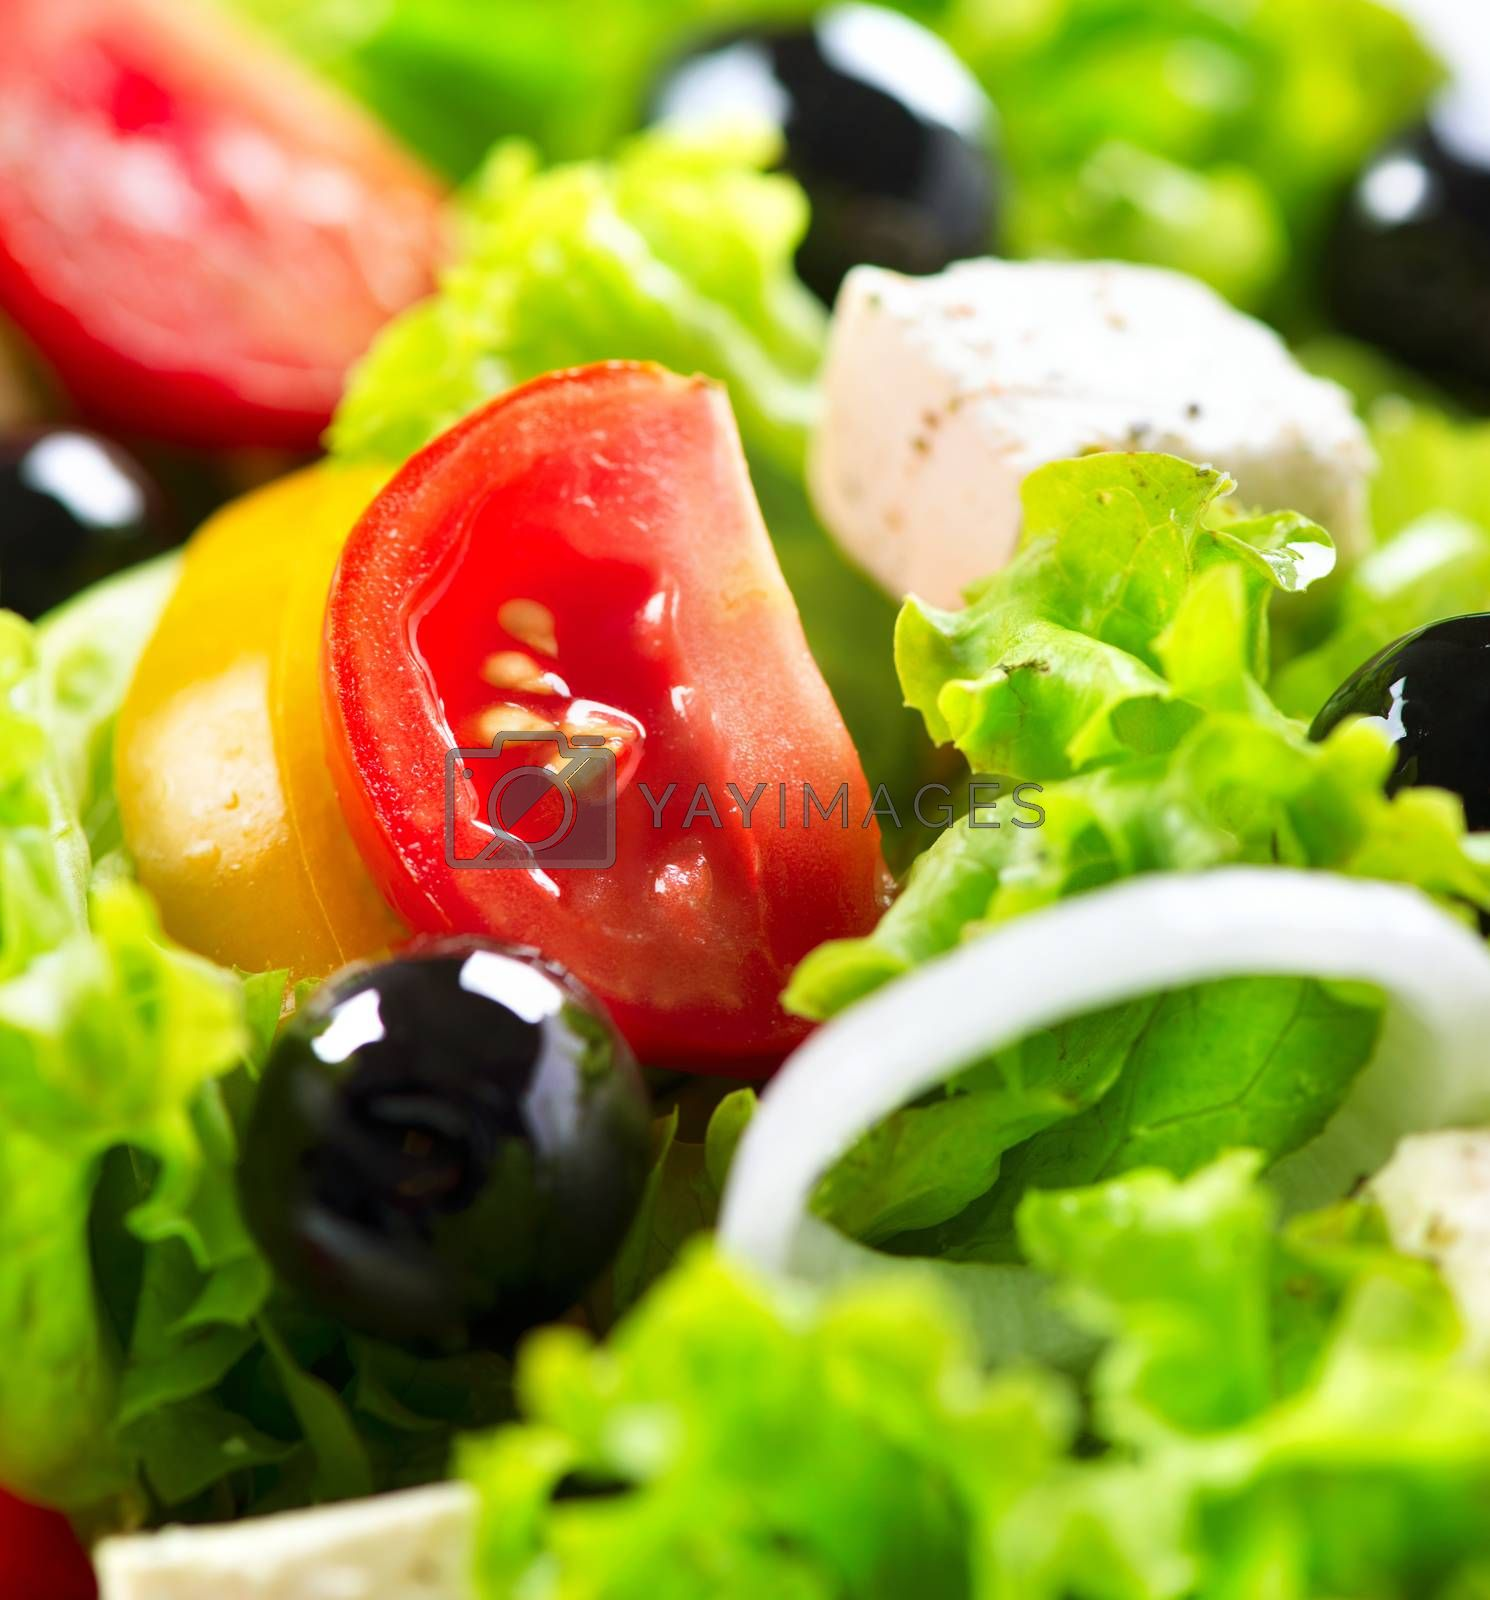 Greek Salad closeup with Feta Cheese, Tomatoes and Olives by Subbotina Anna